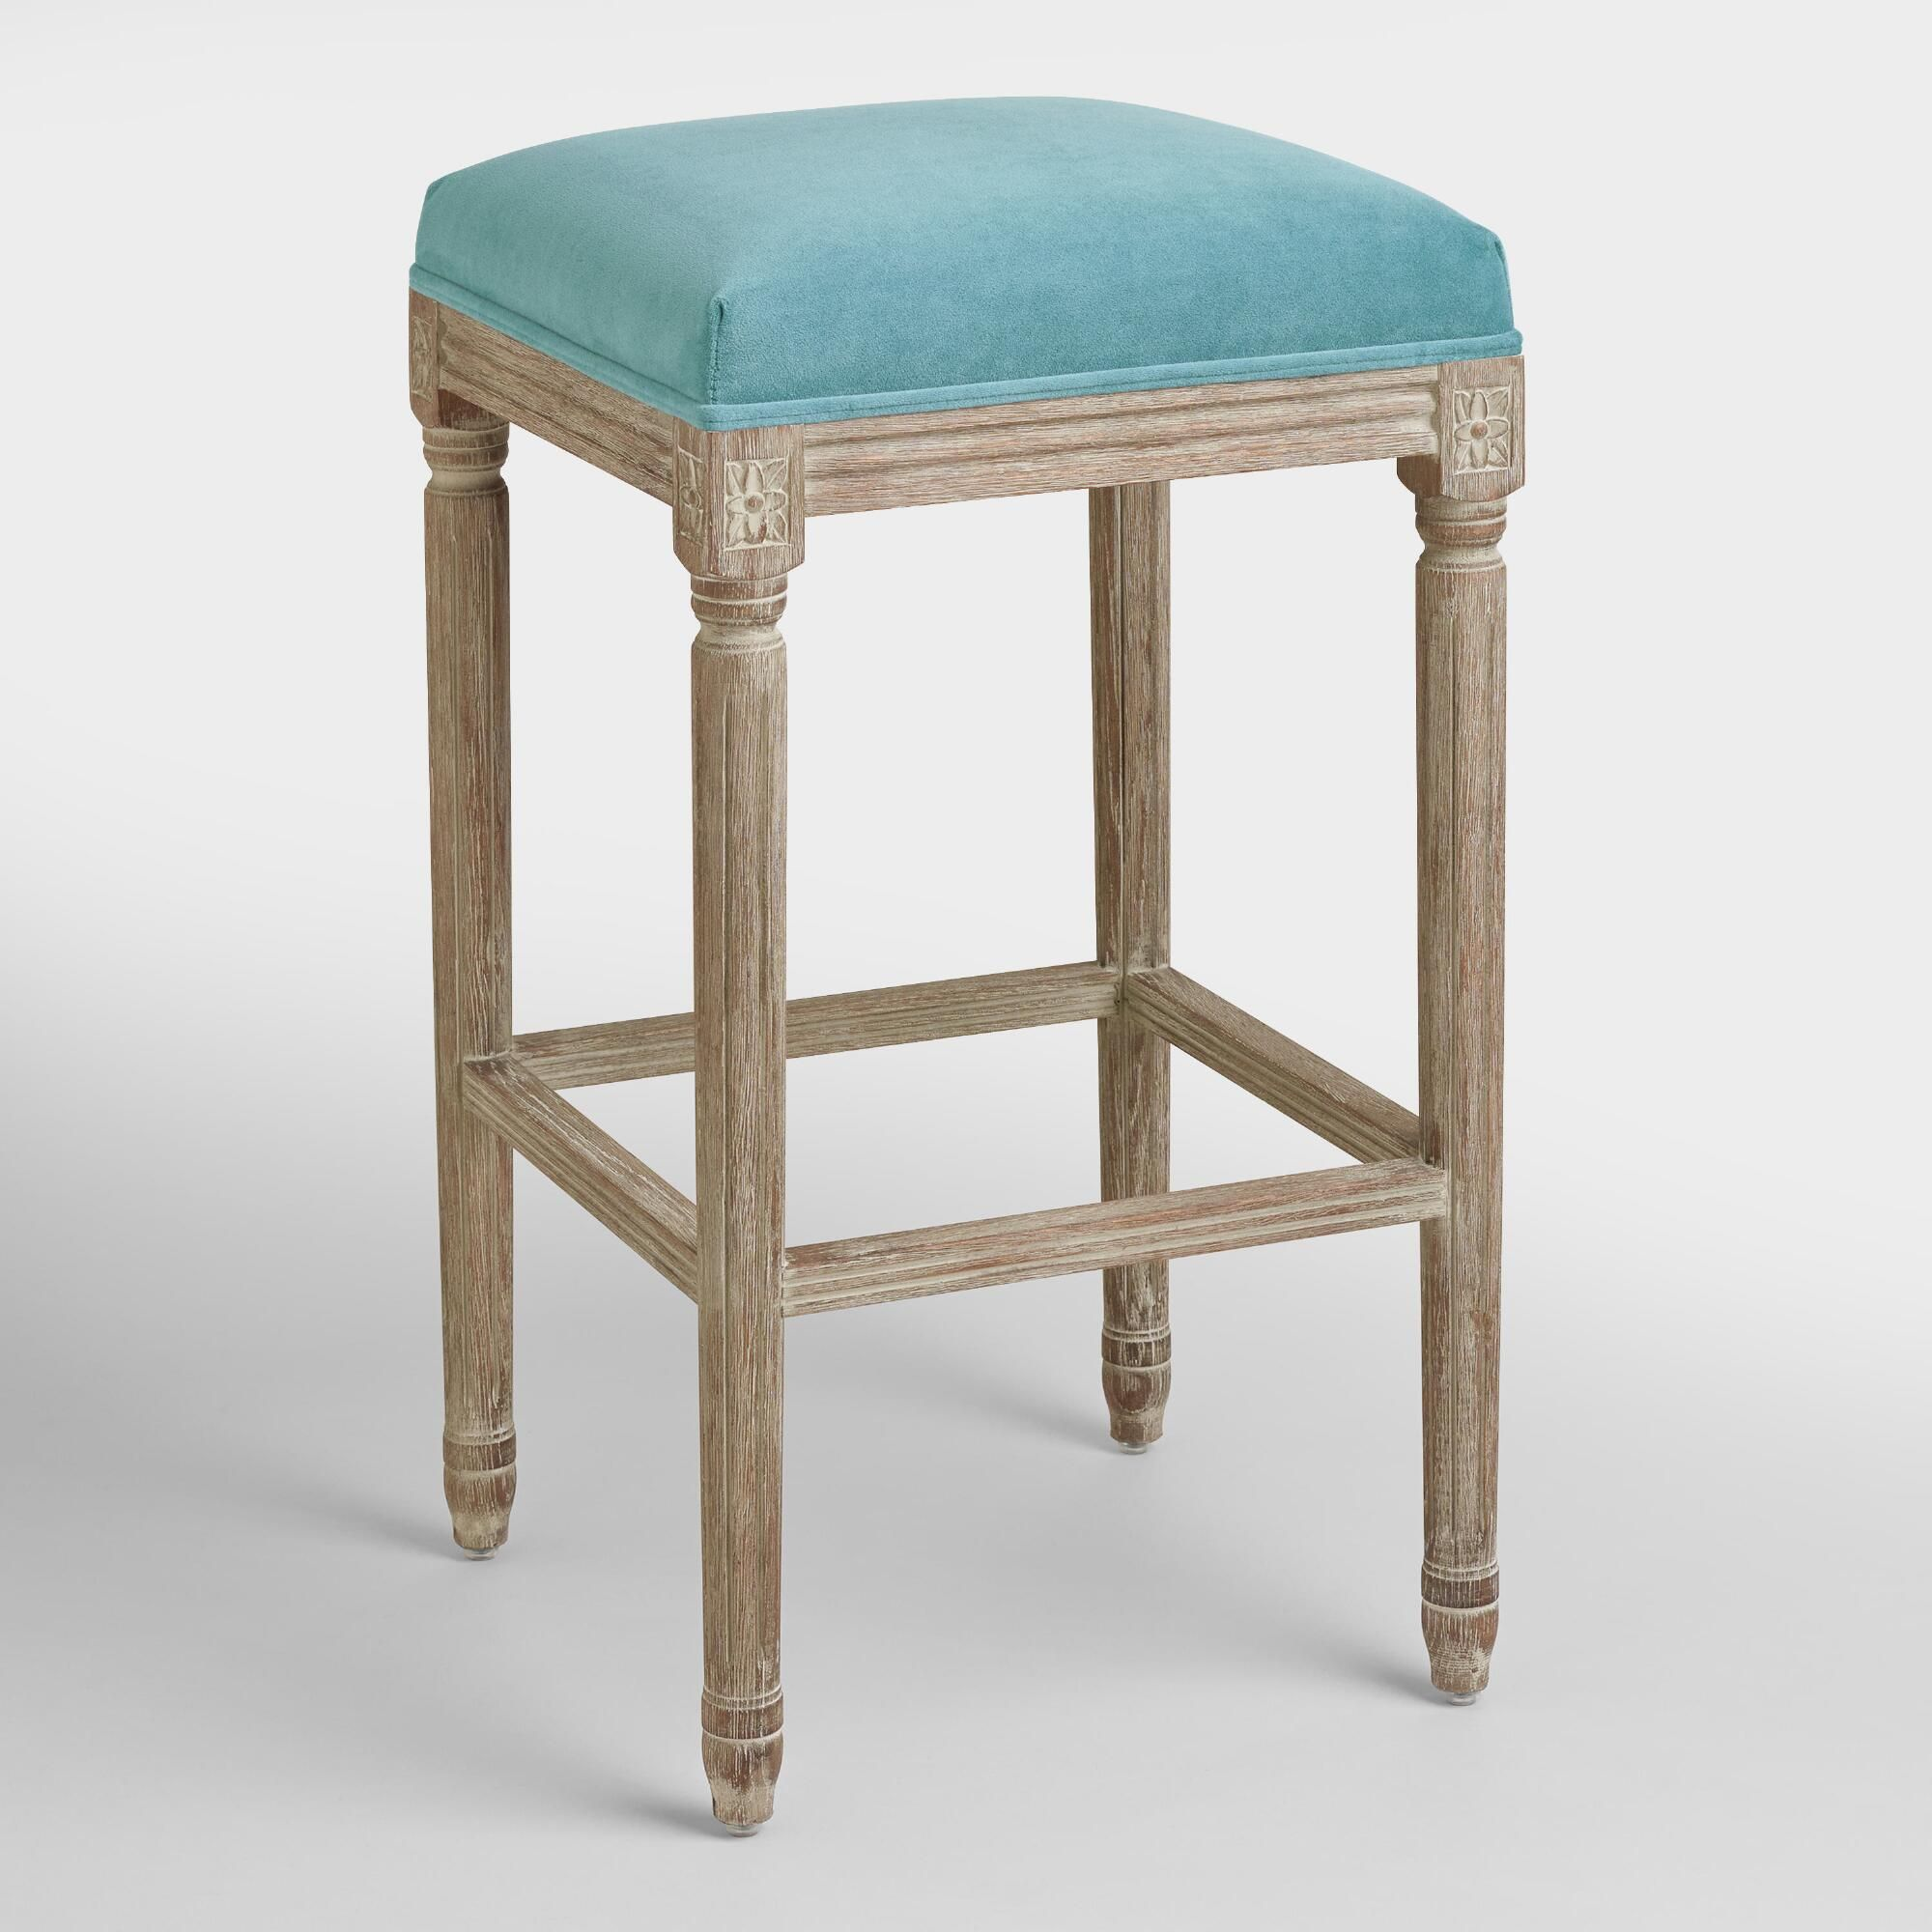 Peacock Paige Backless Barstool | Peacocks, White oak and Upholstery